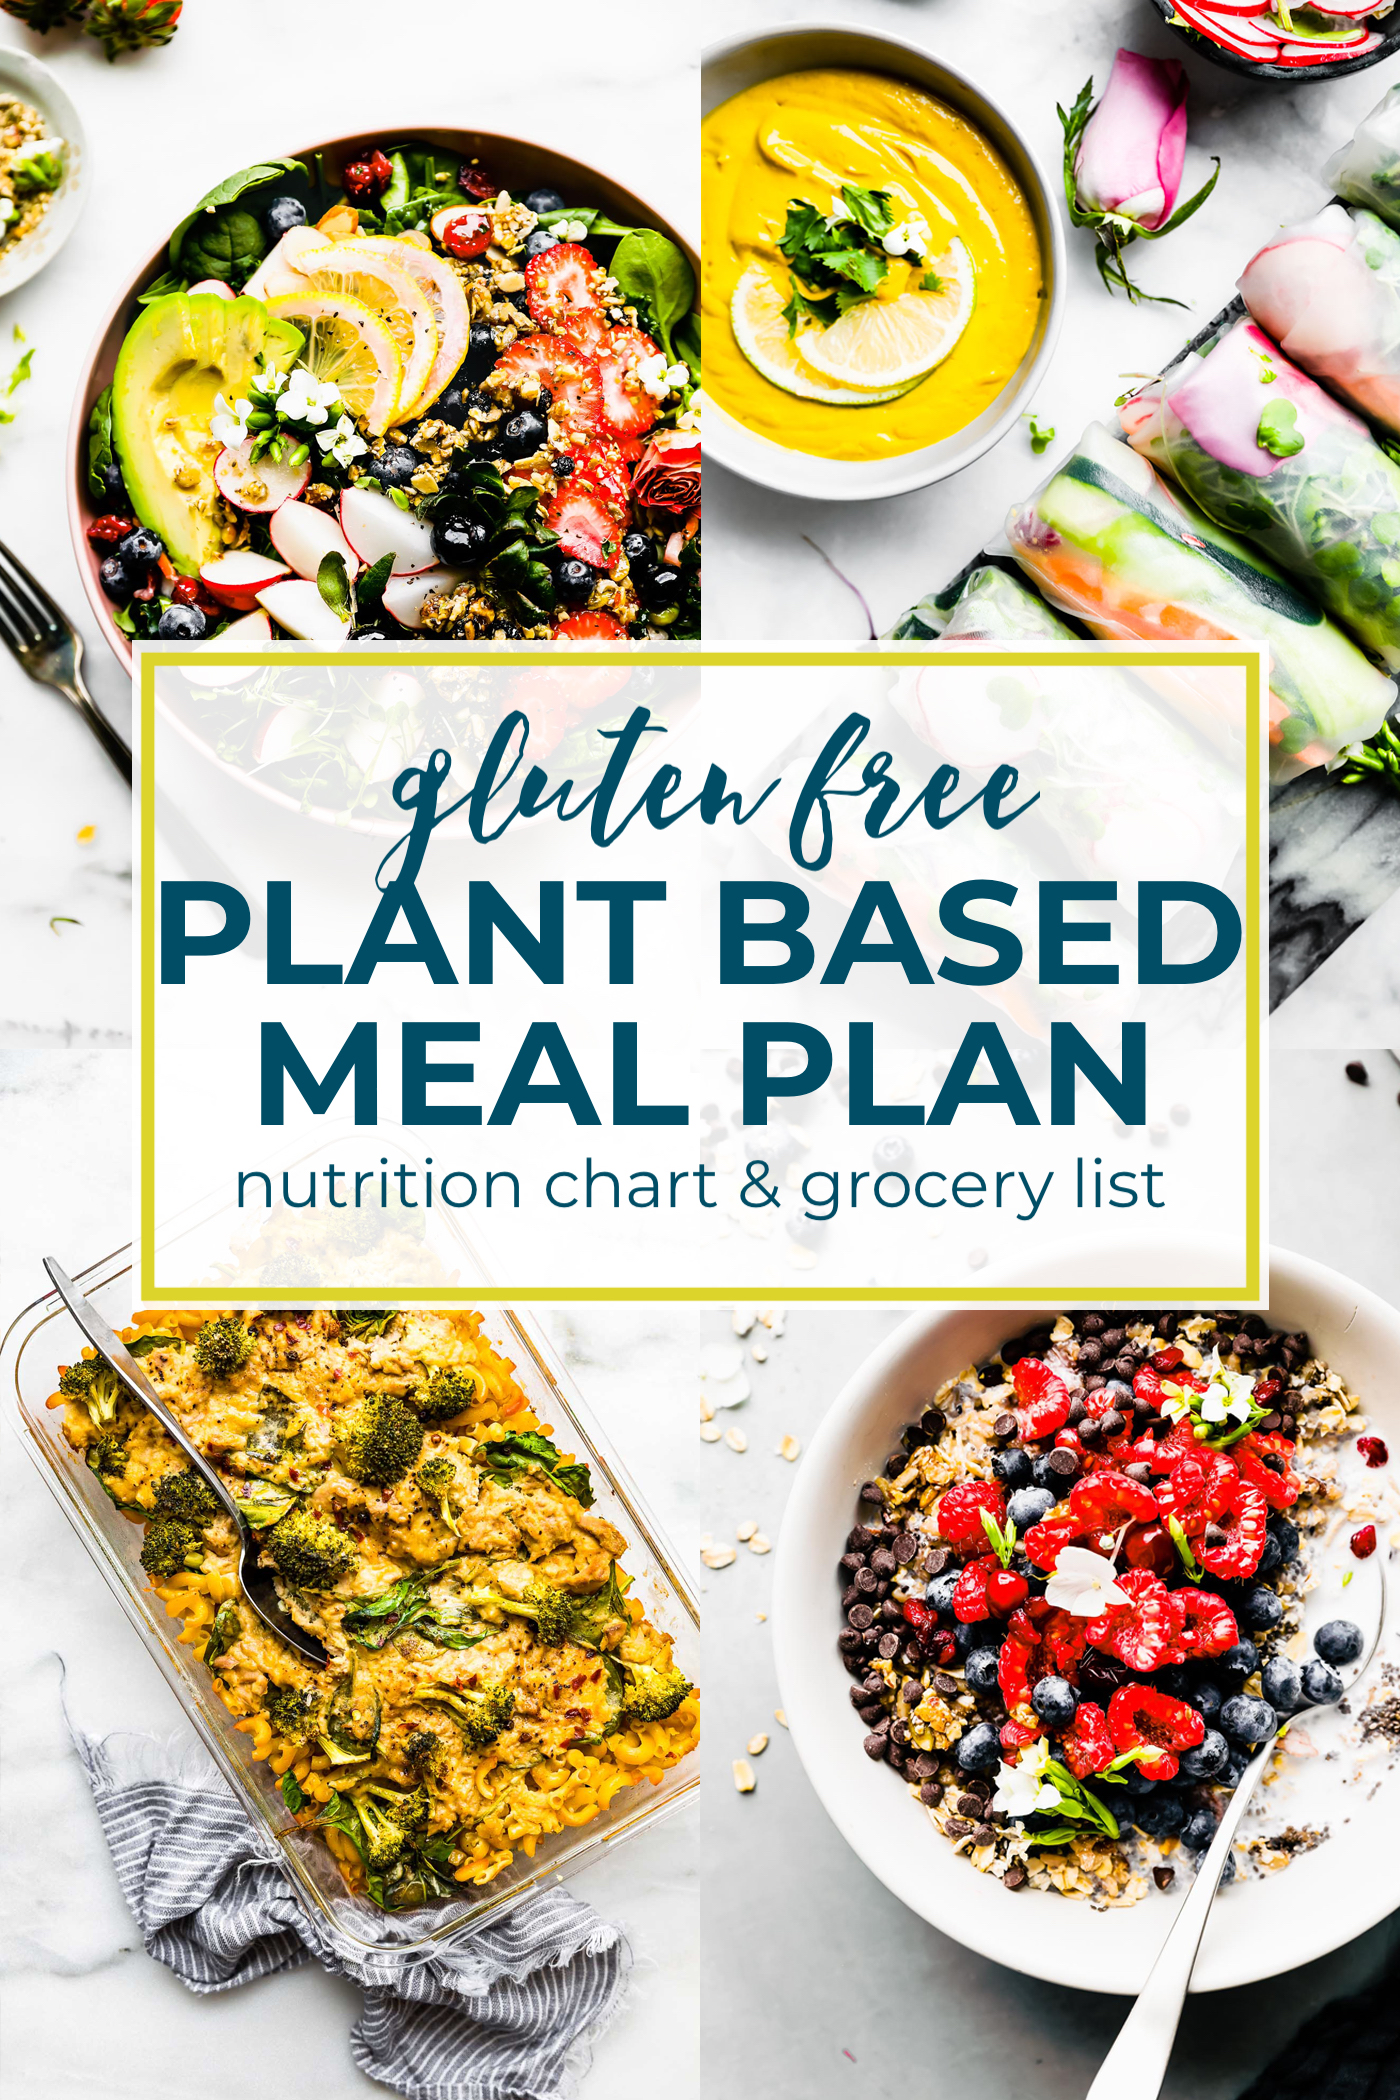 This plant based foods meal plan and grocery list is perfect for anyone on a gluten free and plant based diet, and we have vegan-friendly options, too!